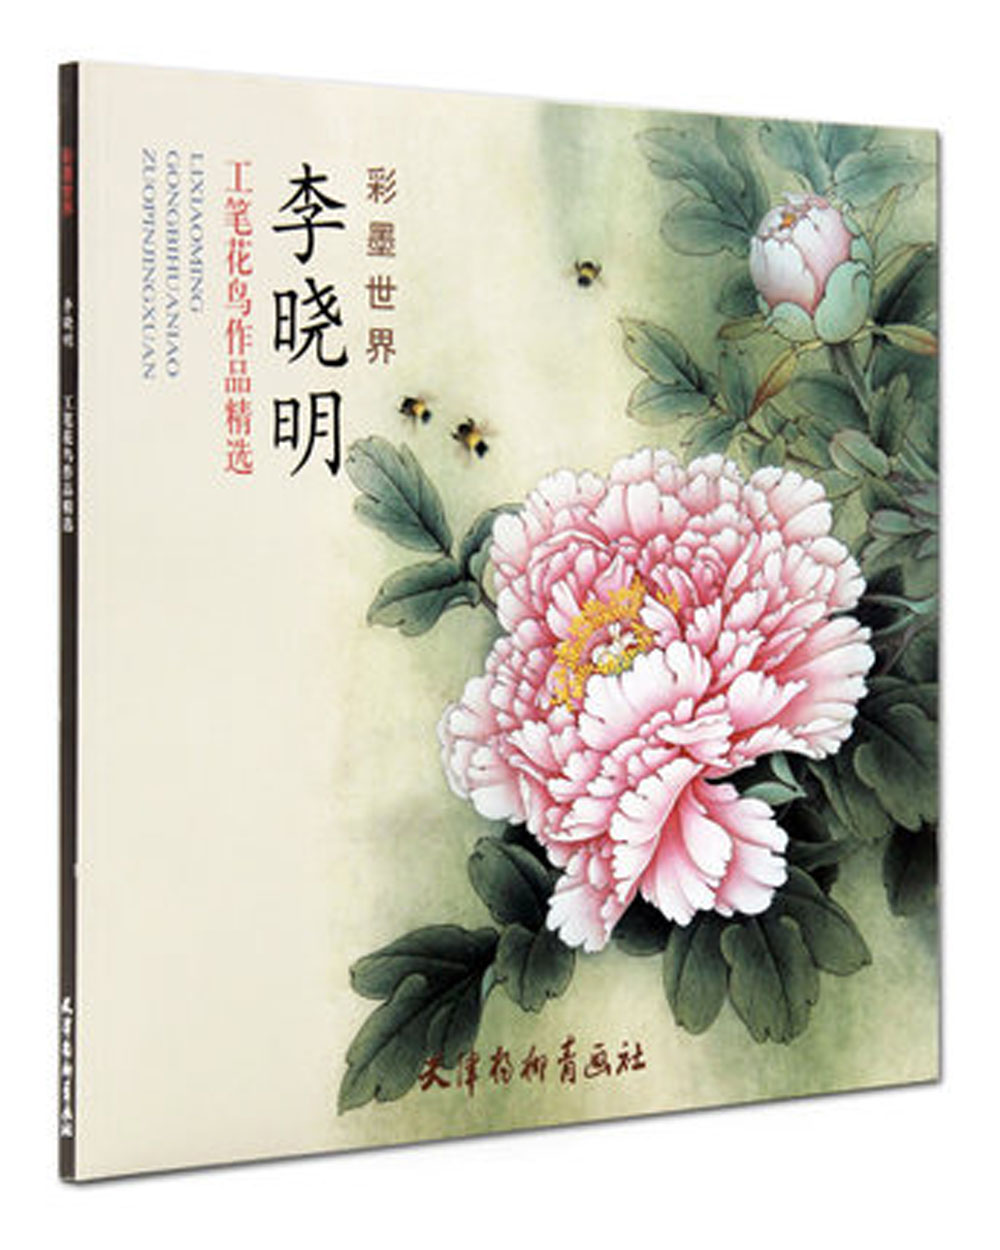 Chinese Flower Painting Art Book by Li Xiaoming Gongbi Peony Lotus Orchid карликовое дерево large orchid flower 20 sementes semente yd34e